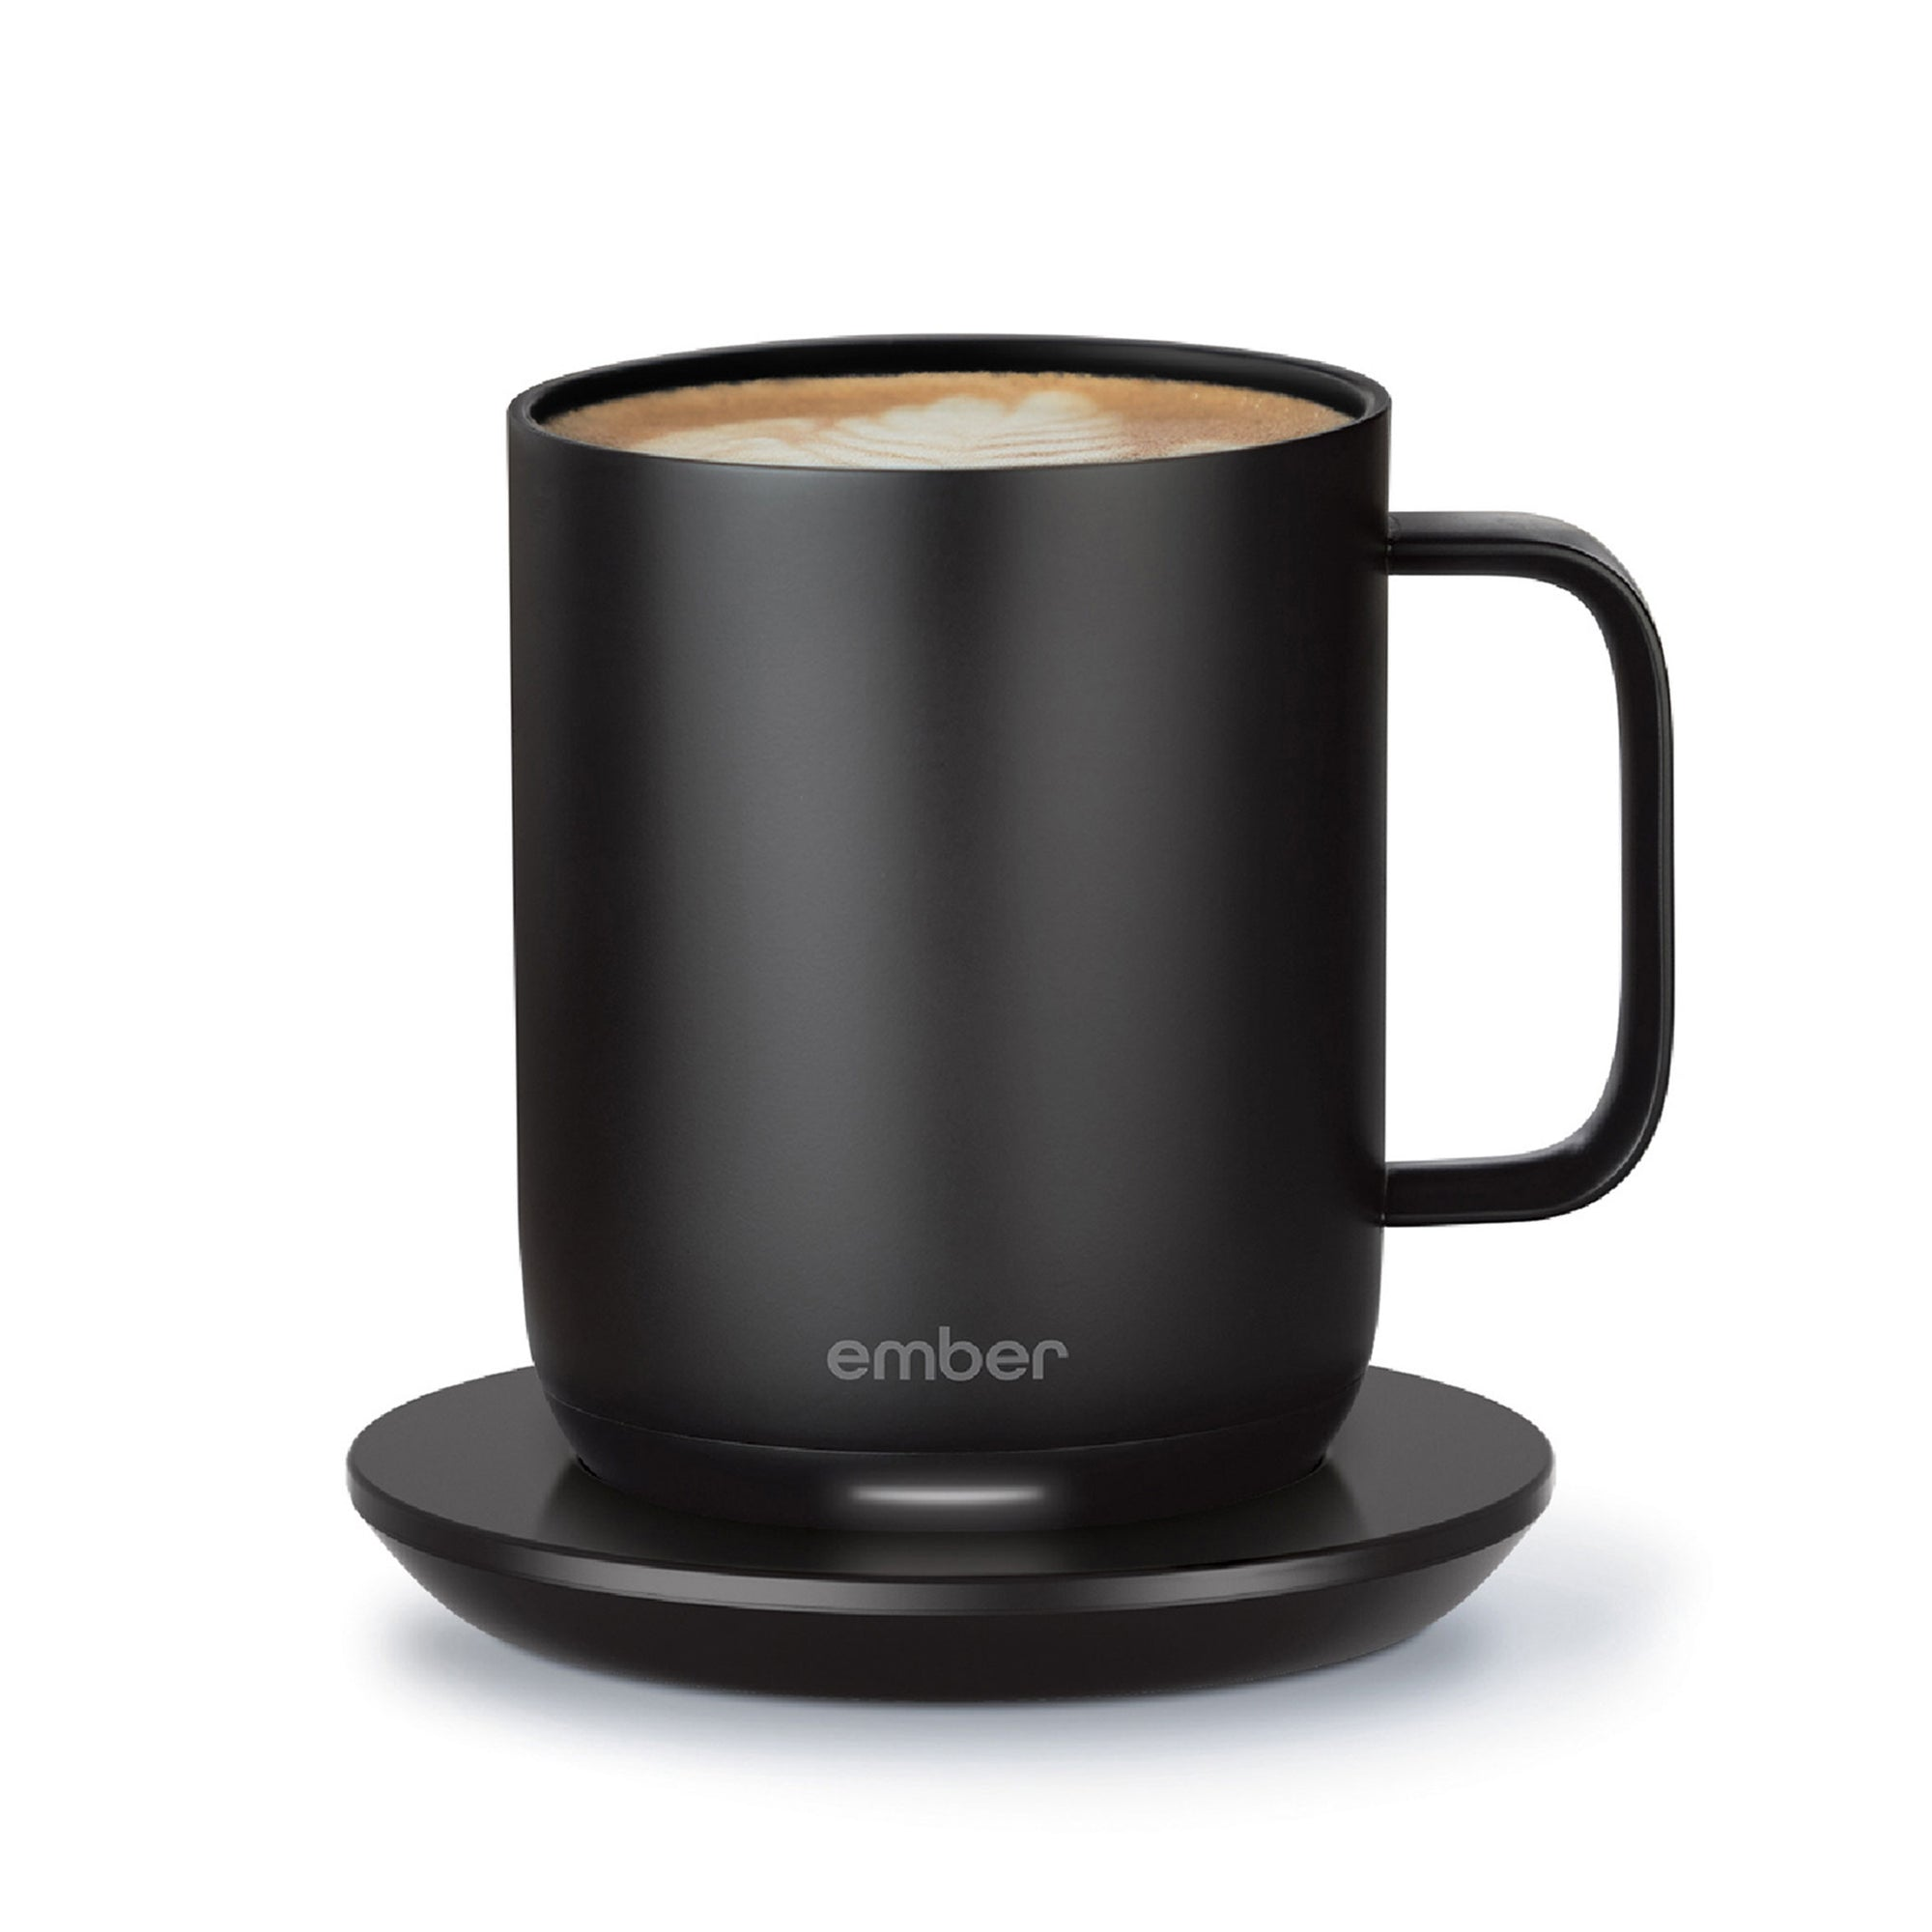 Electric Coffee Mug Black V2, 295ml - Ember - Espresso Gear